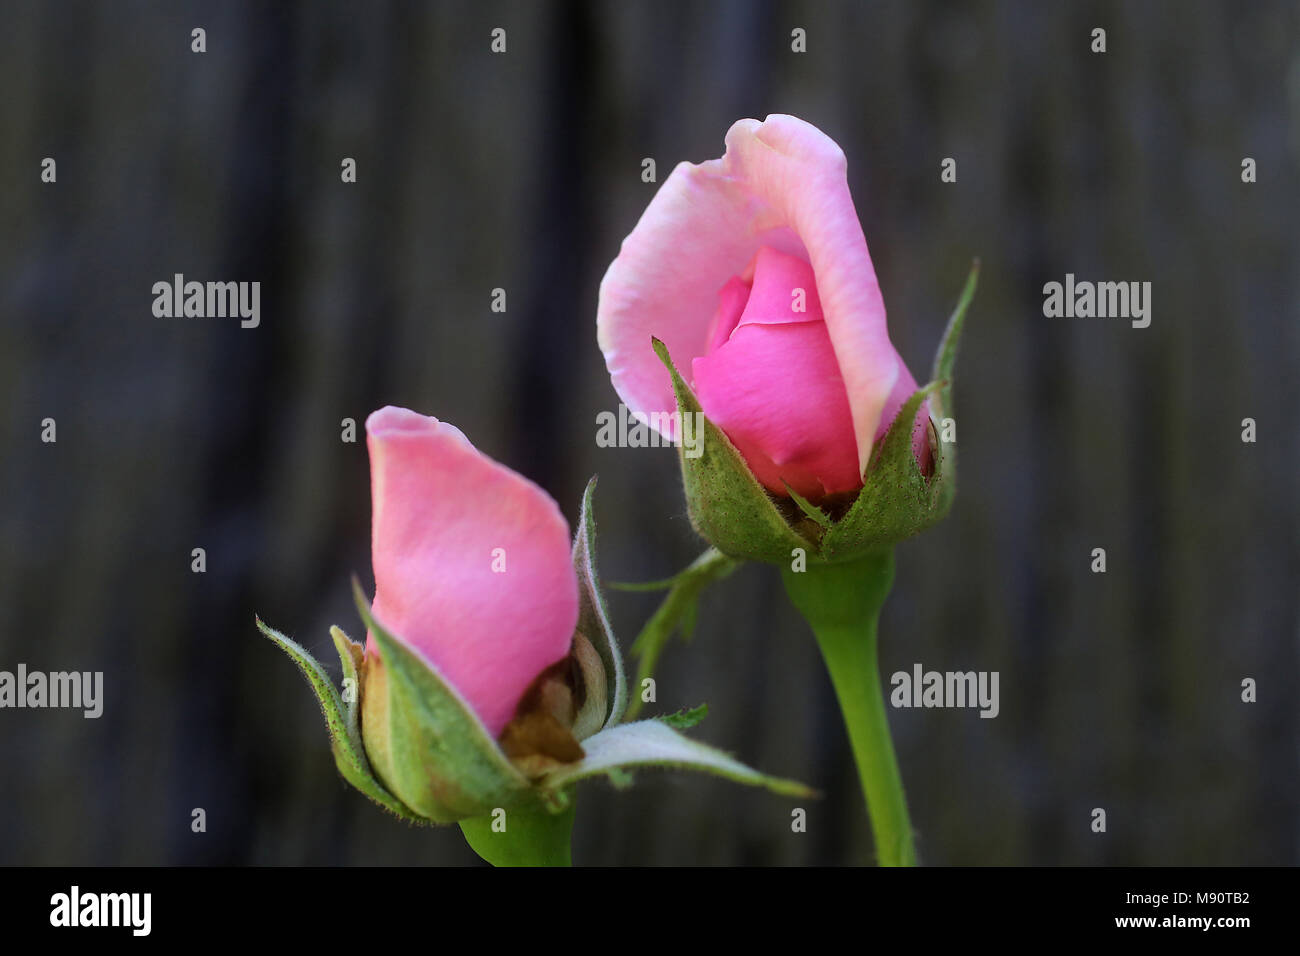 Budding roses. Eure, France. - Stock Image